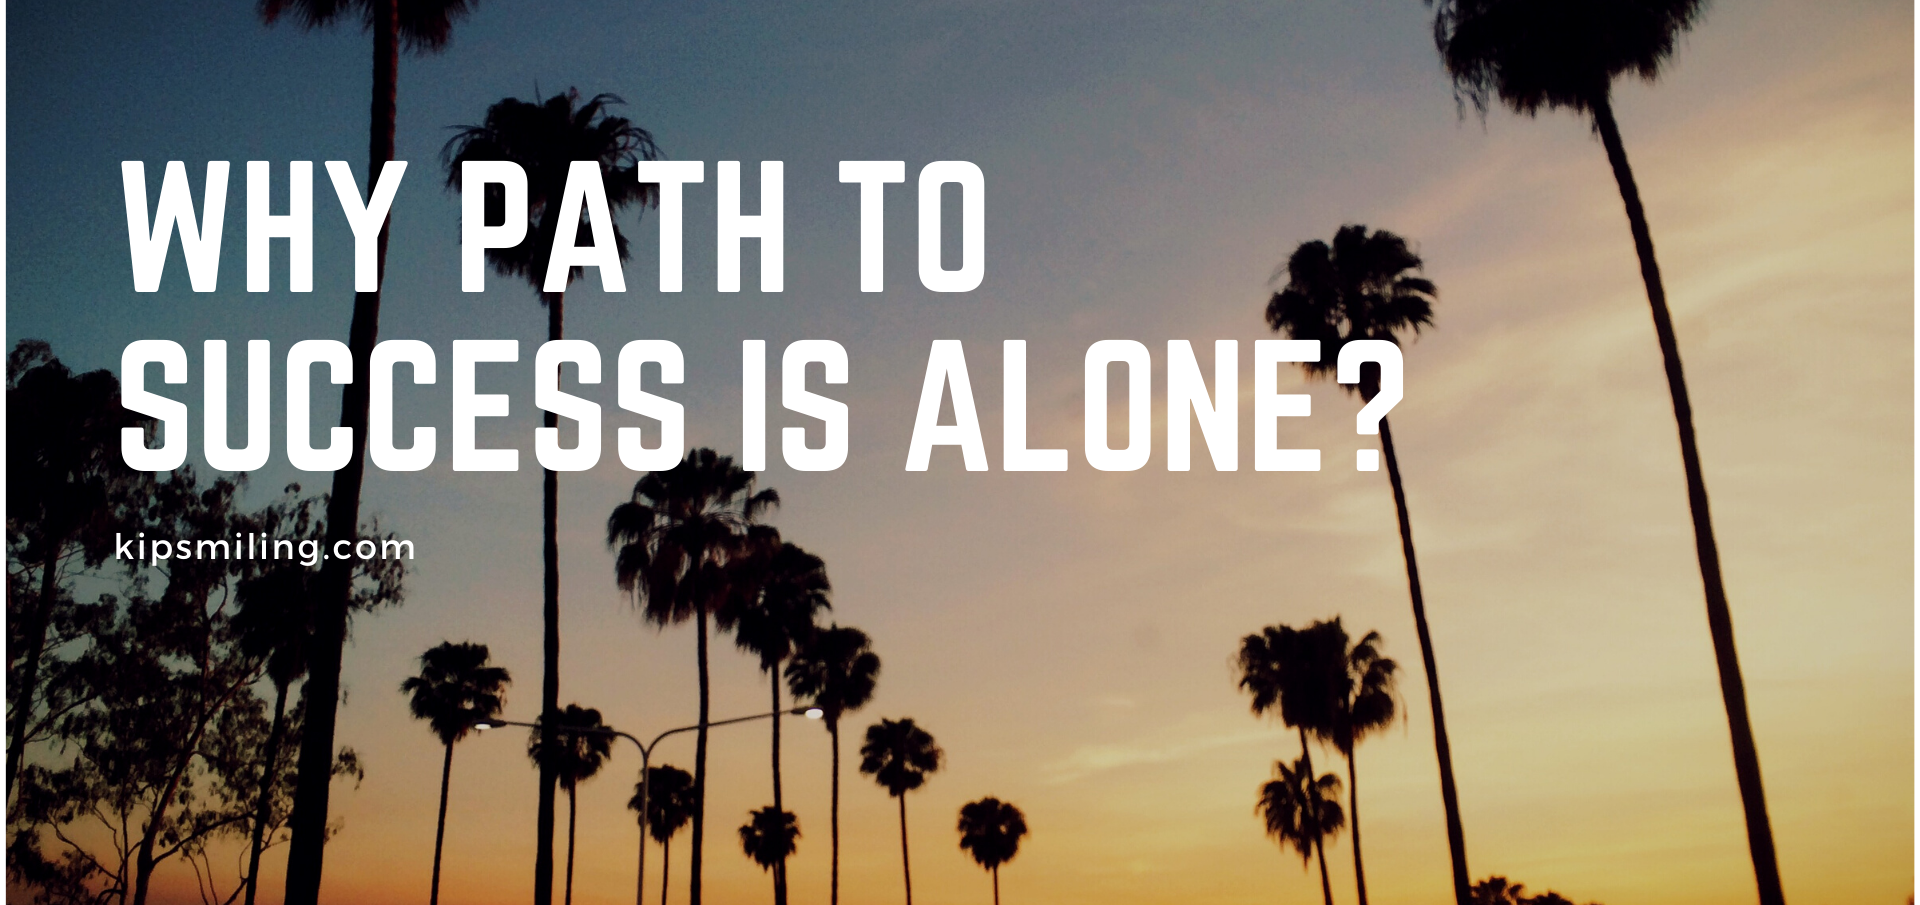 Why Path To Success Is Alone?